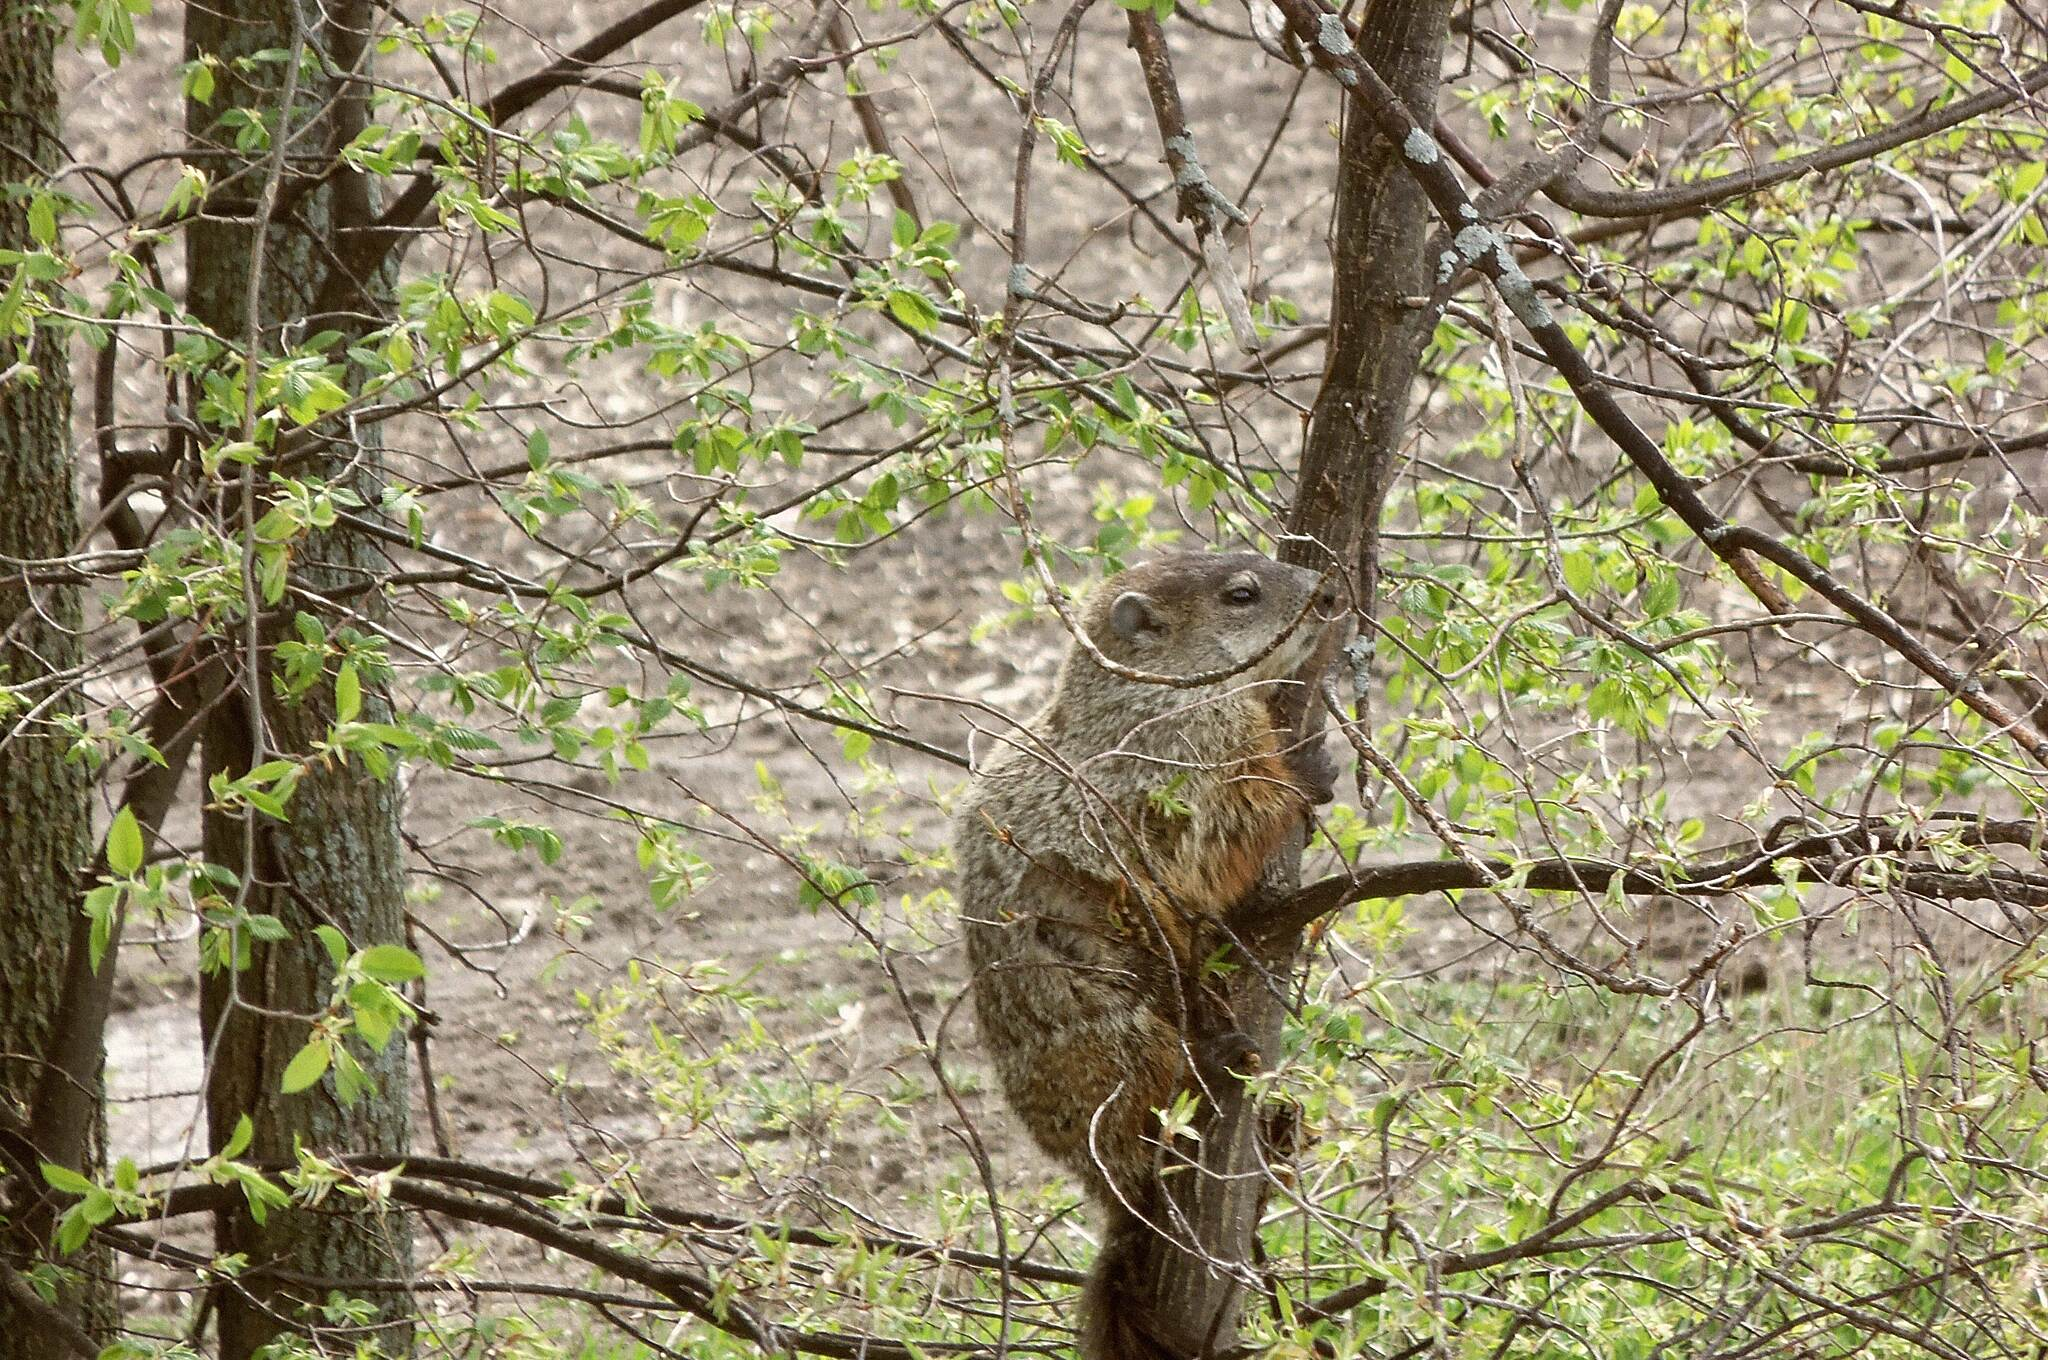 Harger Line Rail-Trail 5-30-2015 Harger Line Rail Trail, Woodchucks can climb trees. 5-30-2015 Harger Line Rail Trail, Woodchucks can climb trees.